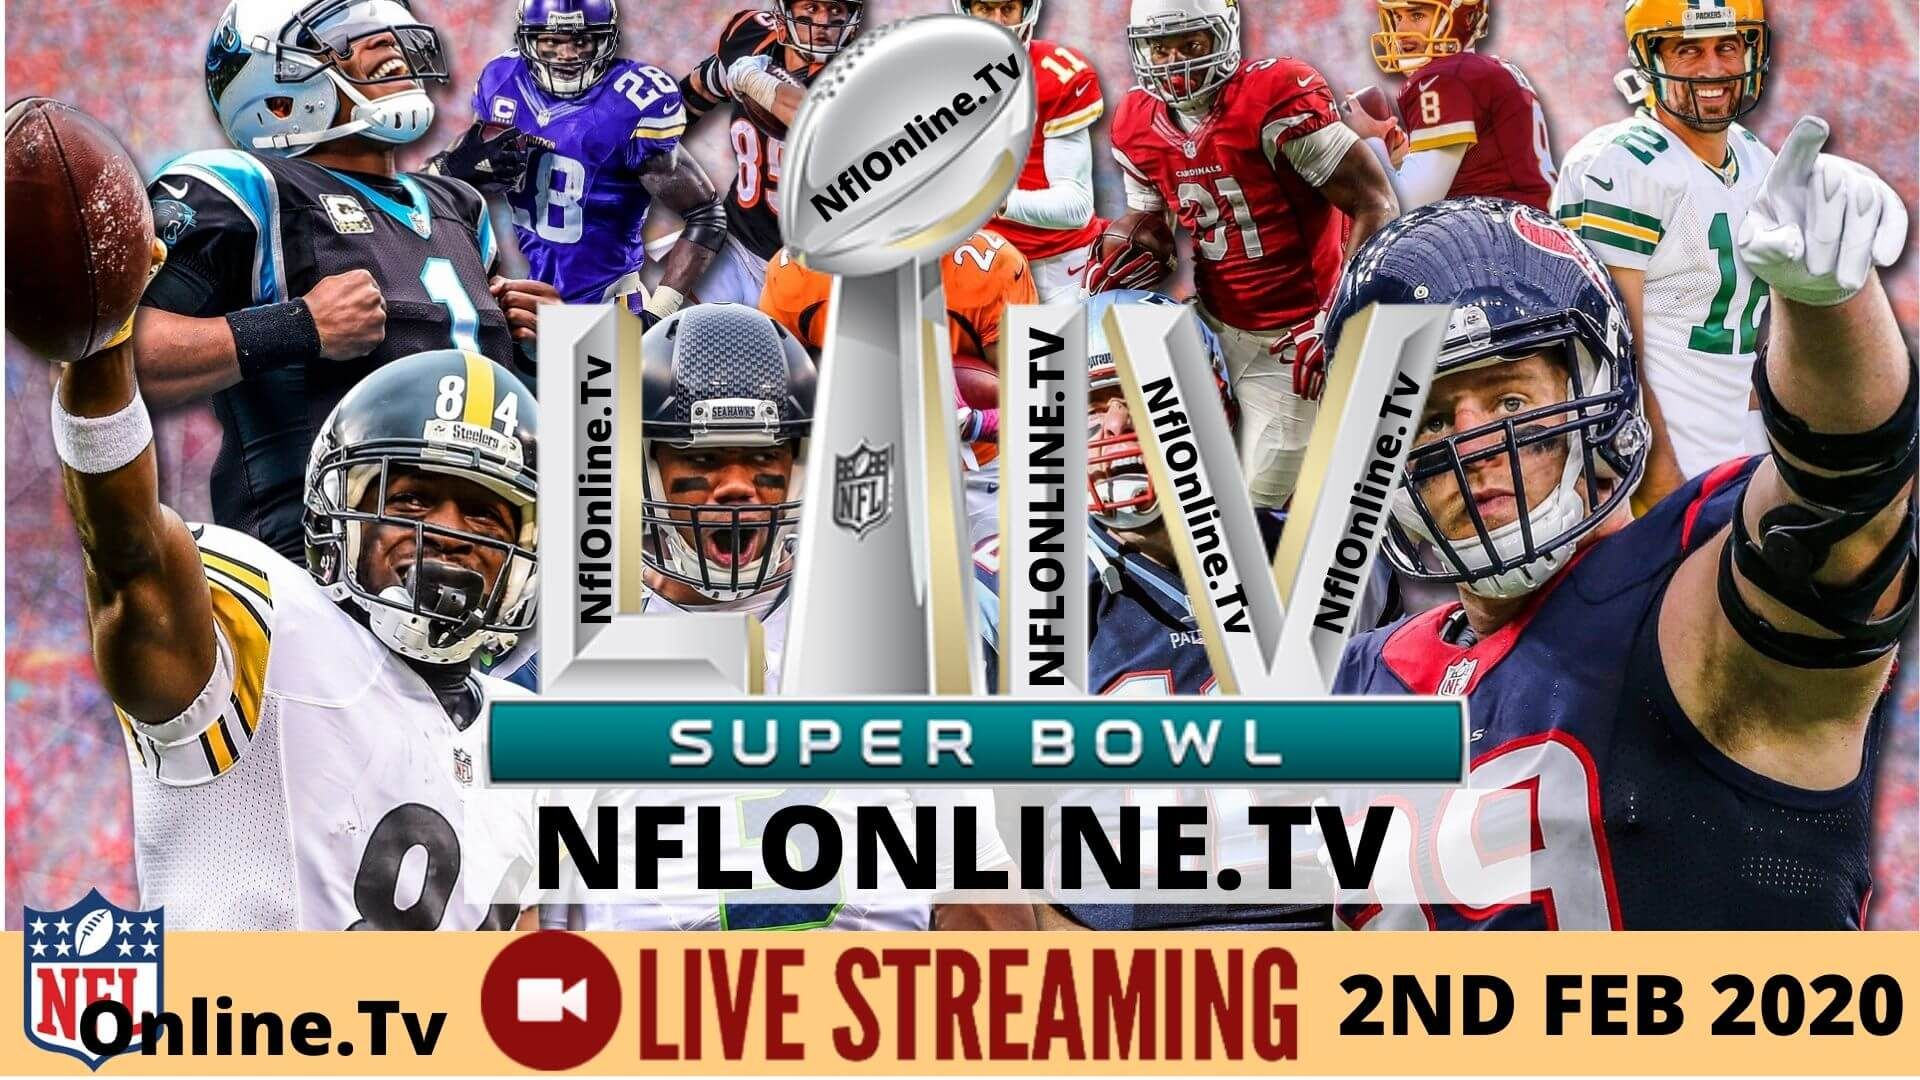 How To Watch Super Bowl 54 Live Stream 2020 In 2020 Super Bowl Super Bowl 54 Nfl